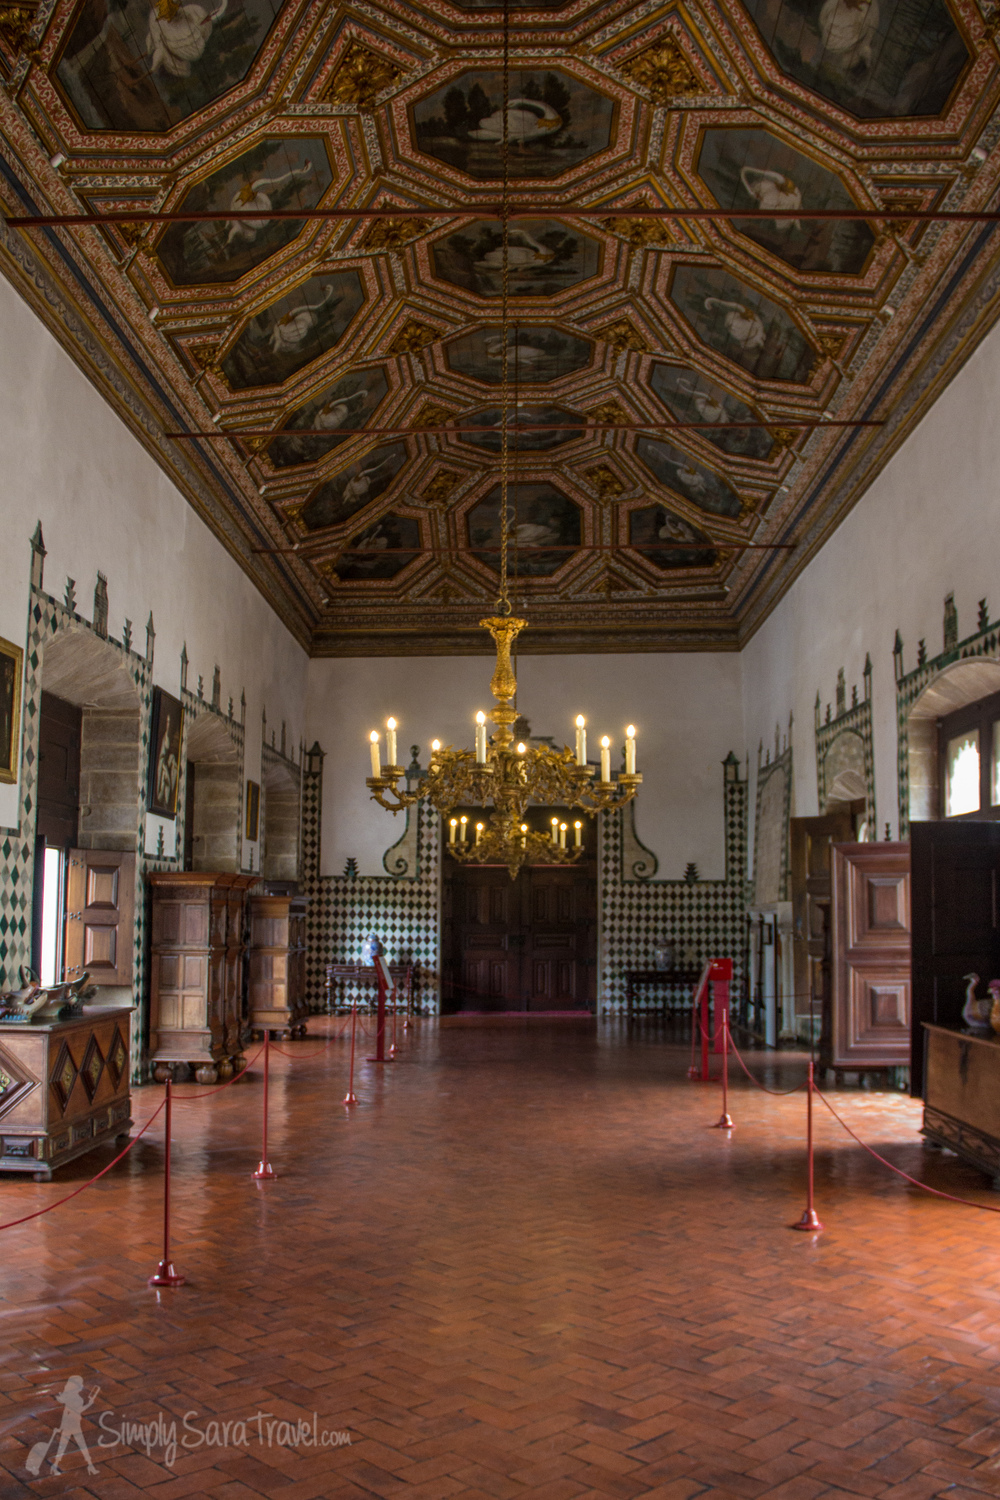 Inside the Swan Hall (Sala dos Cisnes)